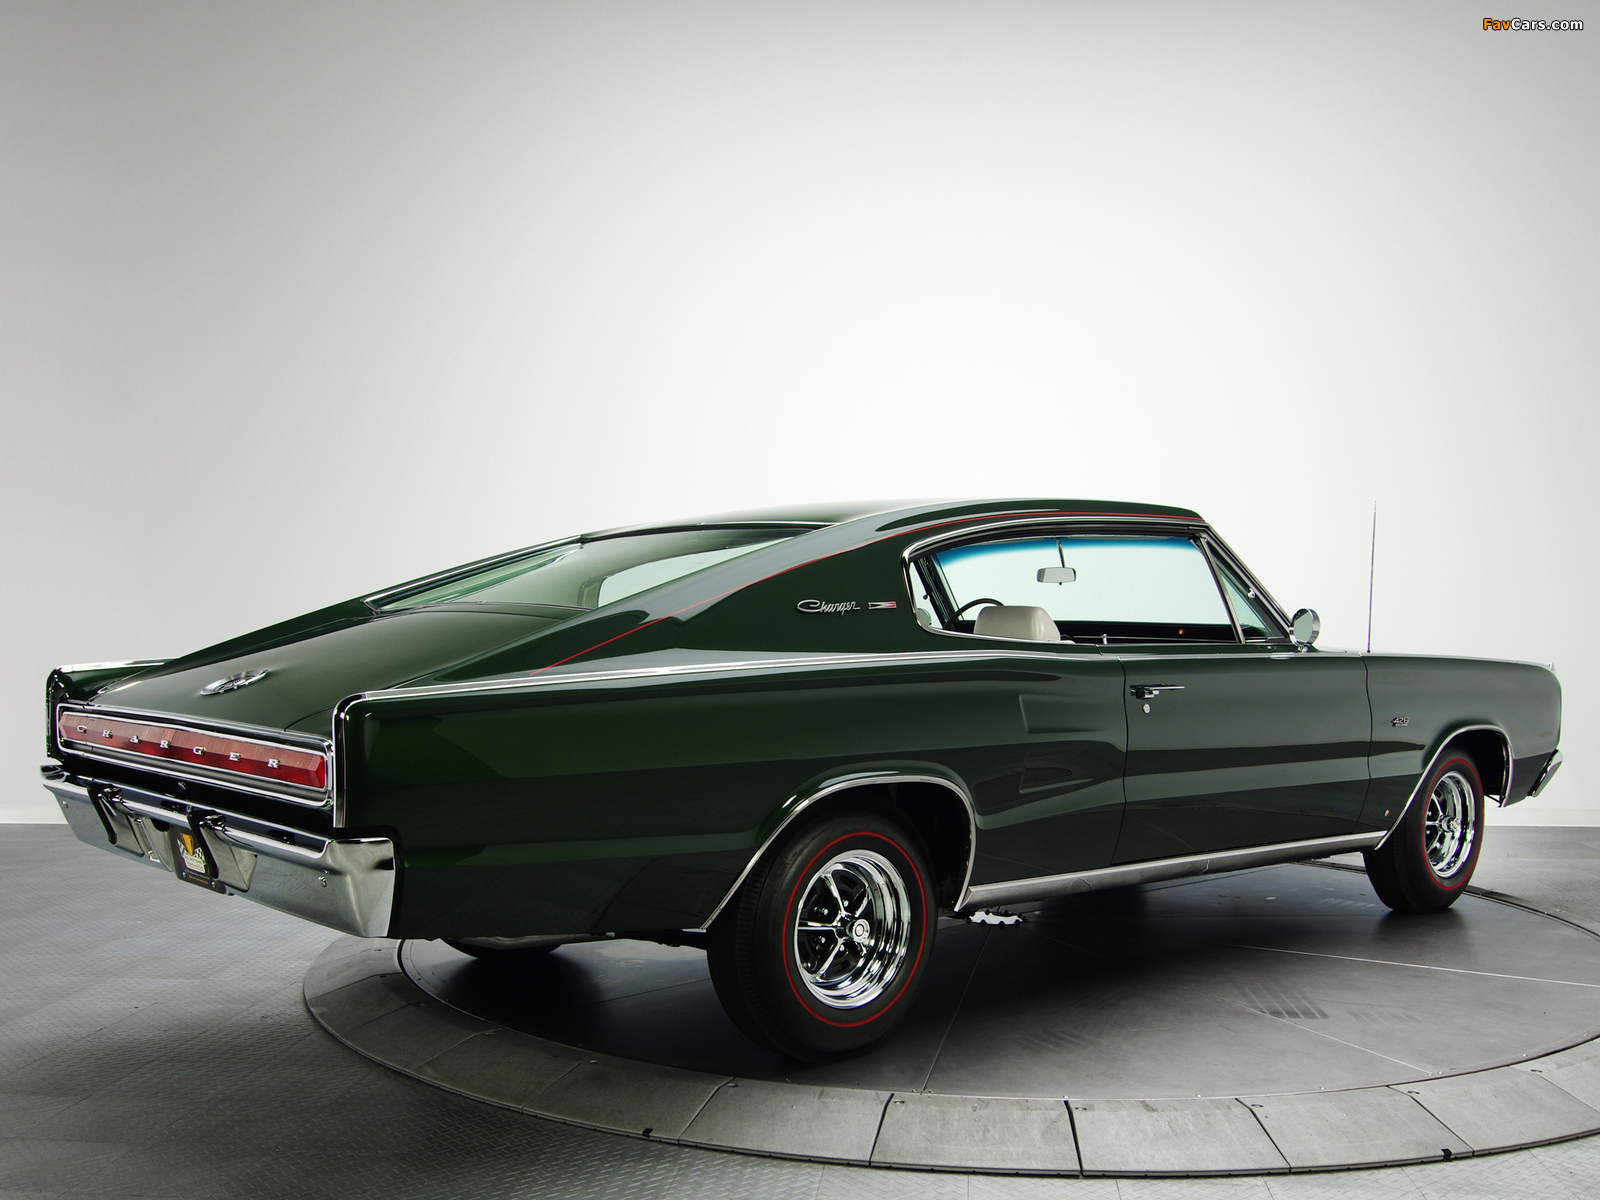 Dodge Charger R/T 426 Hemi 1967 pictures (1600 x 1200)